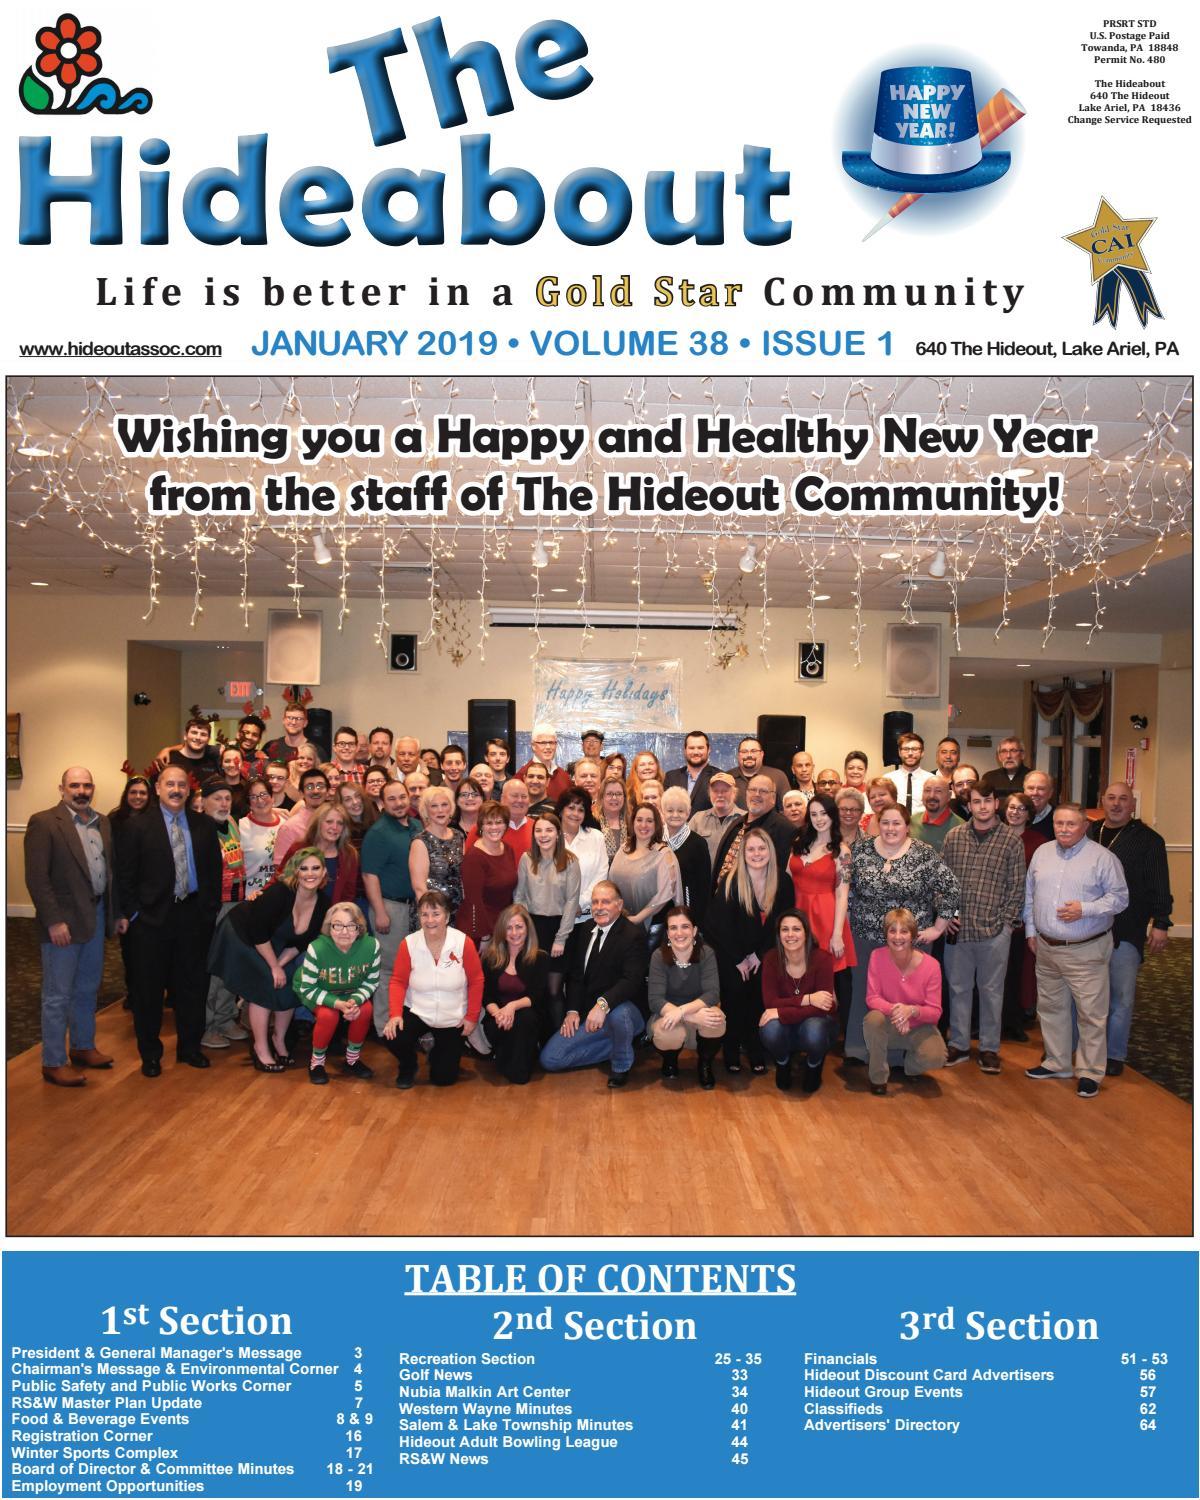 northern beaches christian school multipurpose hall indesign interior The Hideabout January 2019 by The Hideout - issuu